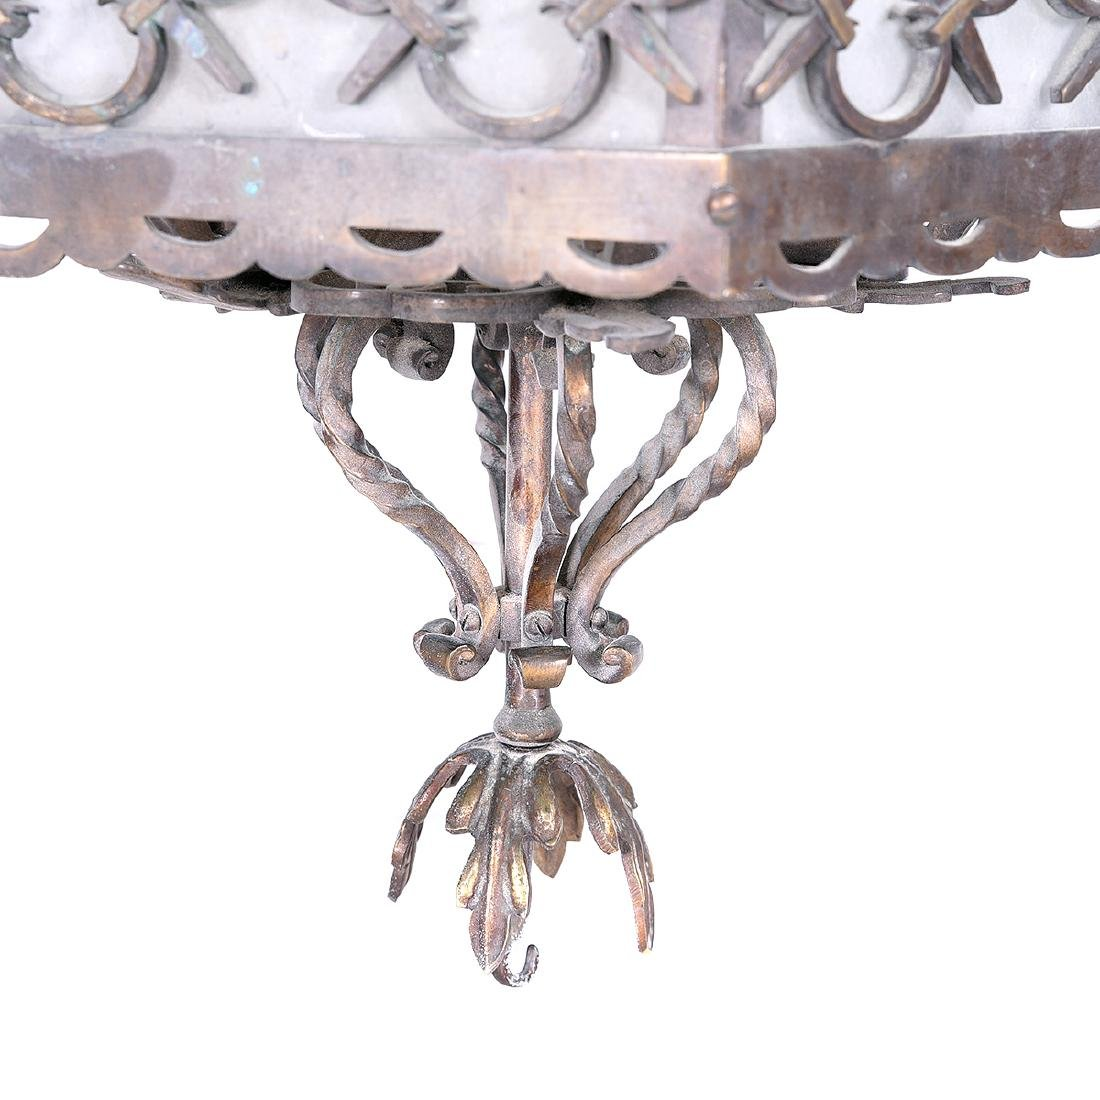 Art Deco Wrought Iron and Glass Lantern Form Chandelier - 4